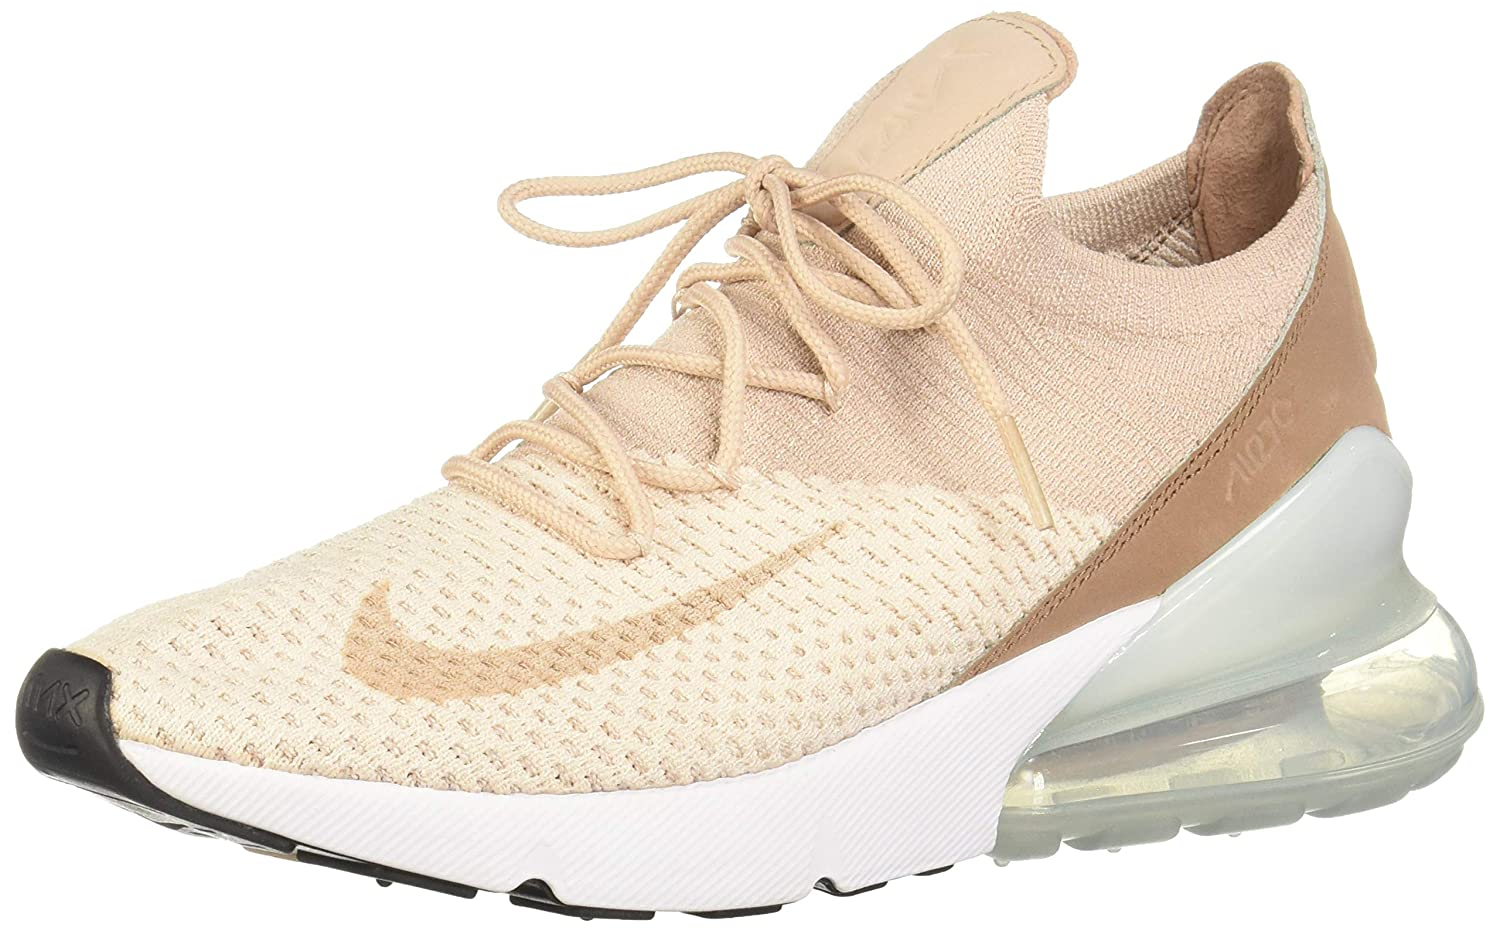 sports shoes 9cc1d 82ee6 Nike W Air Max 270 Flyknit Womens Ah6803-801: Amazon.ca ...